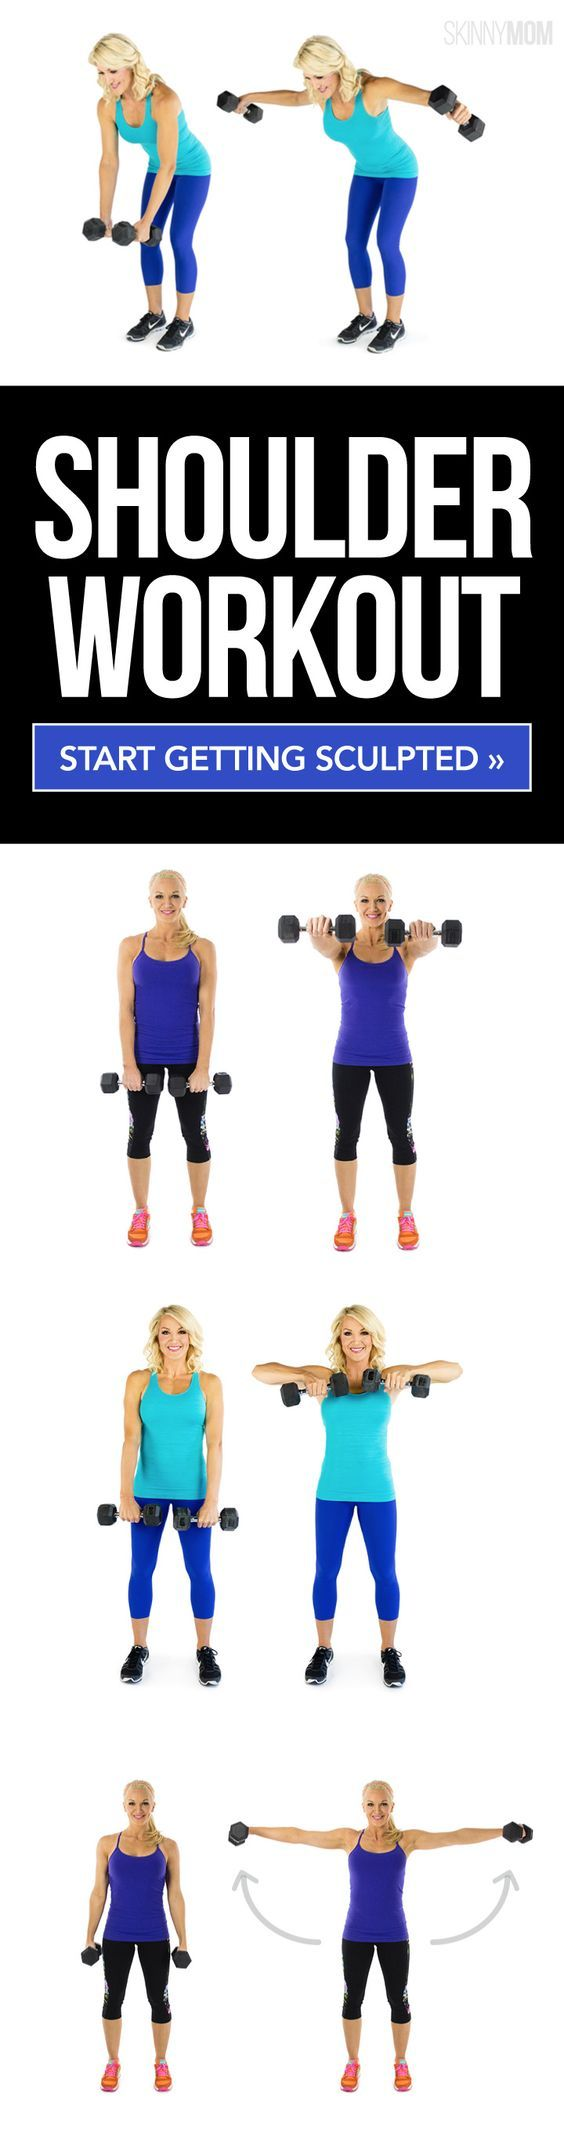 Sculpt those shoulders with dumbbells!